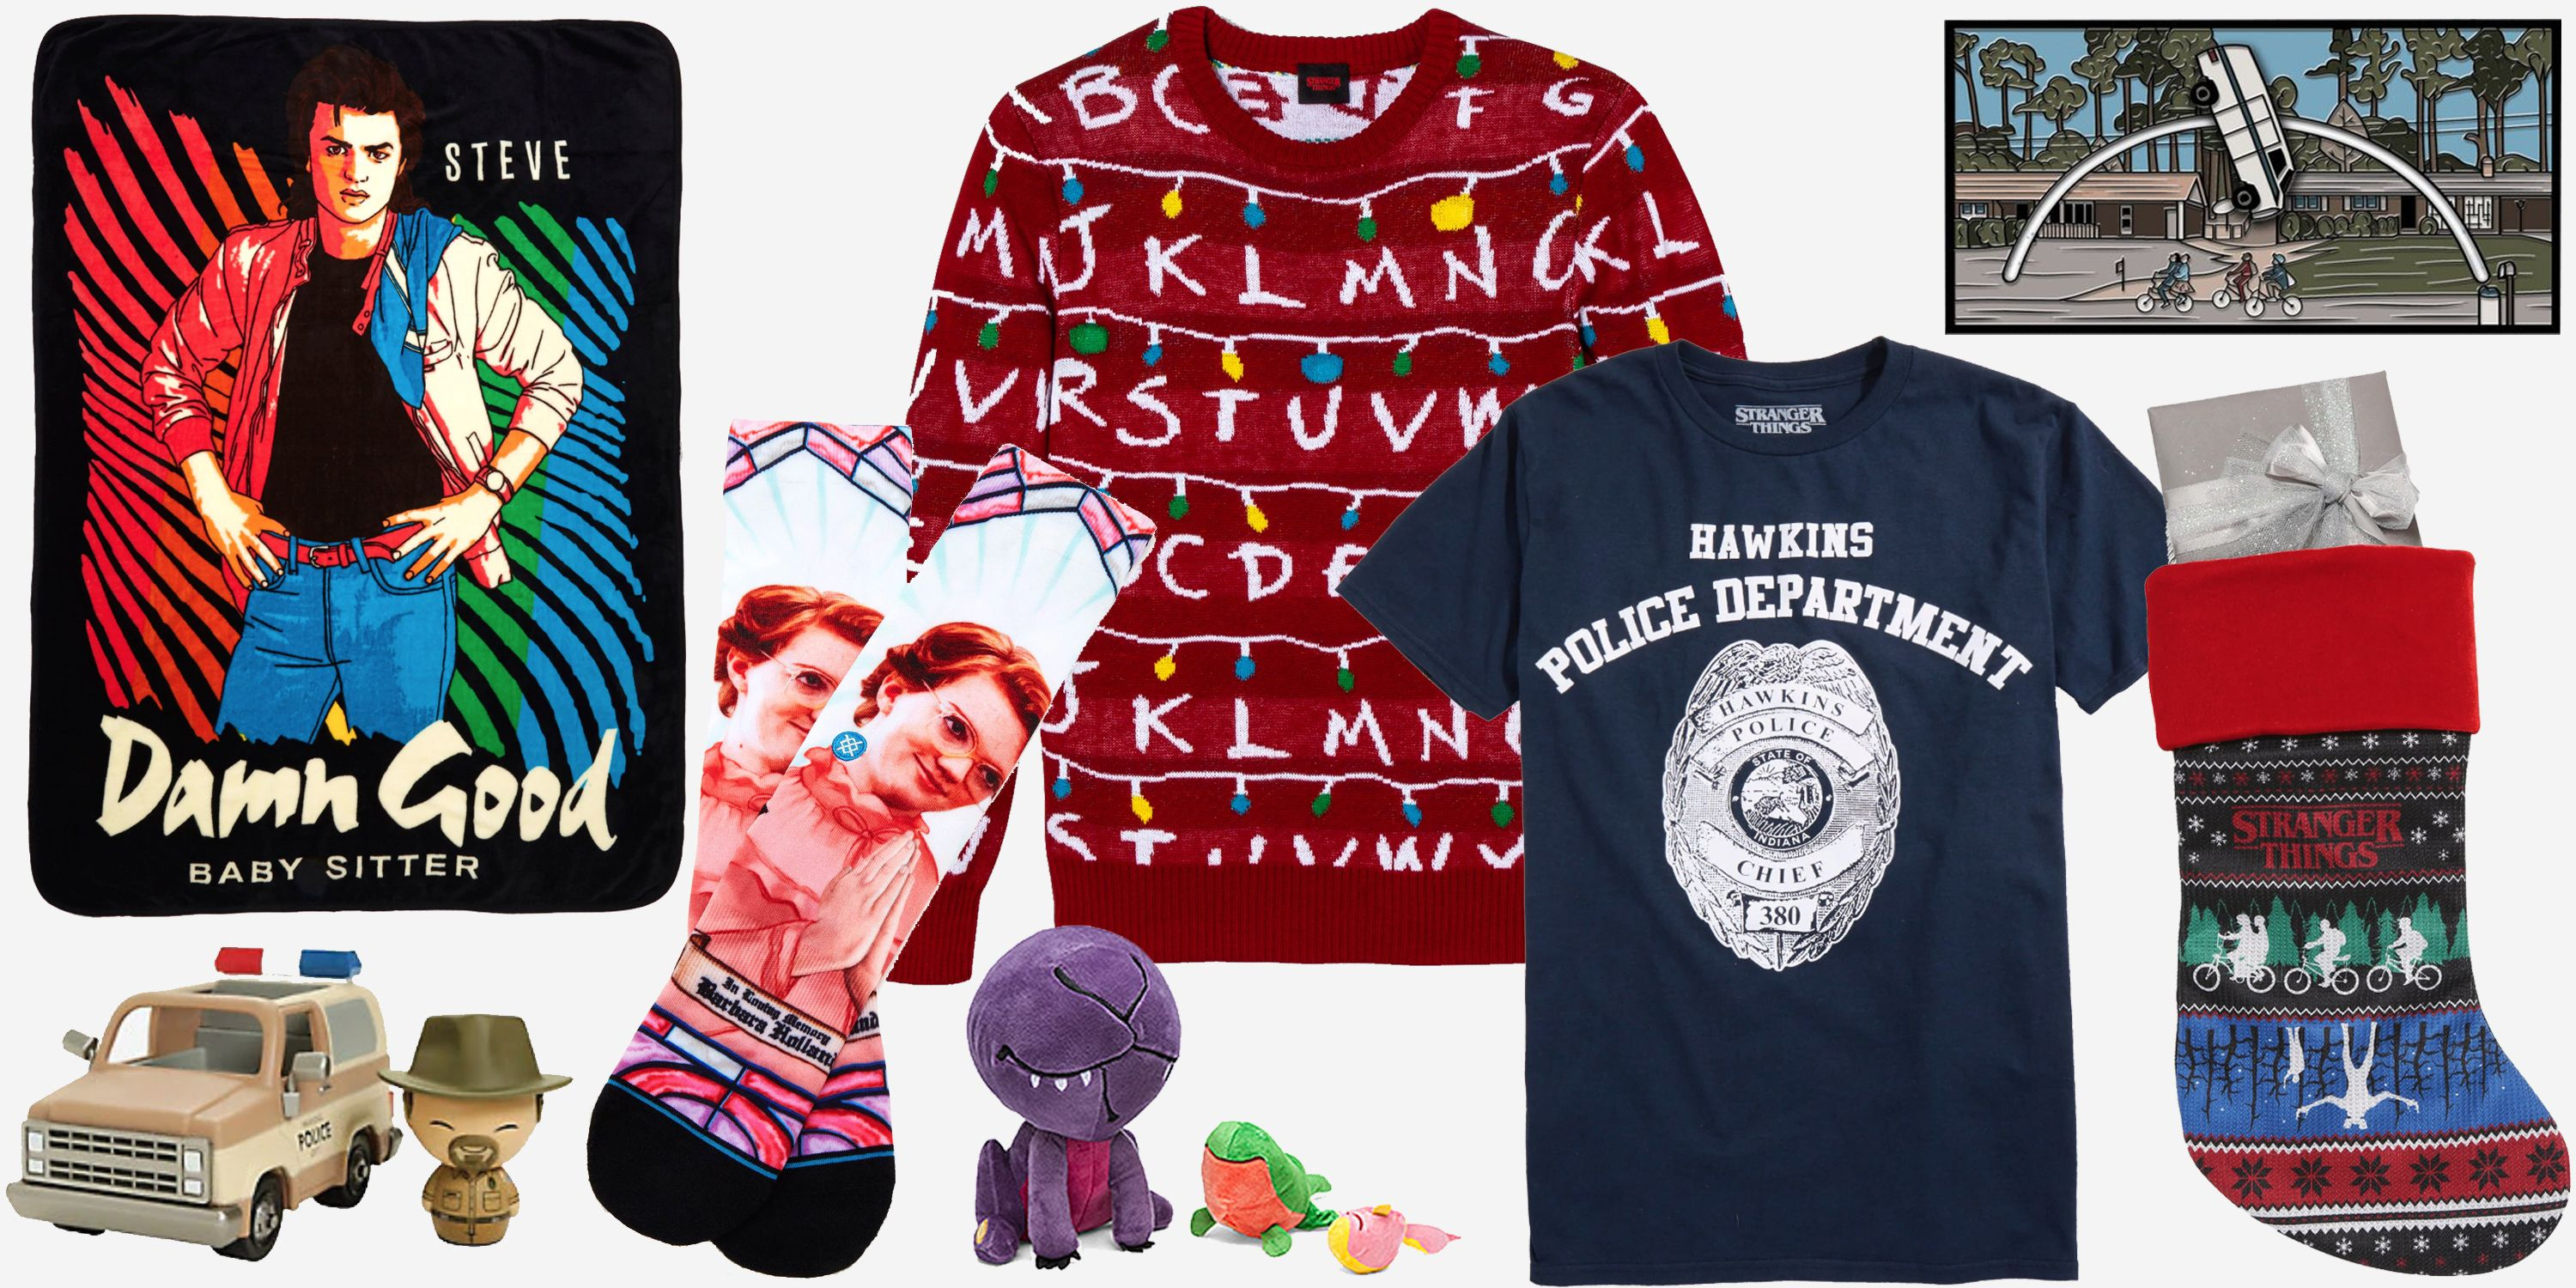 ca3b16e2 21 Best Stranger Things Gifts 2018 - Cool Upside Down Merchandise